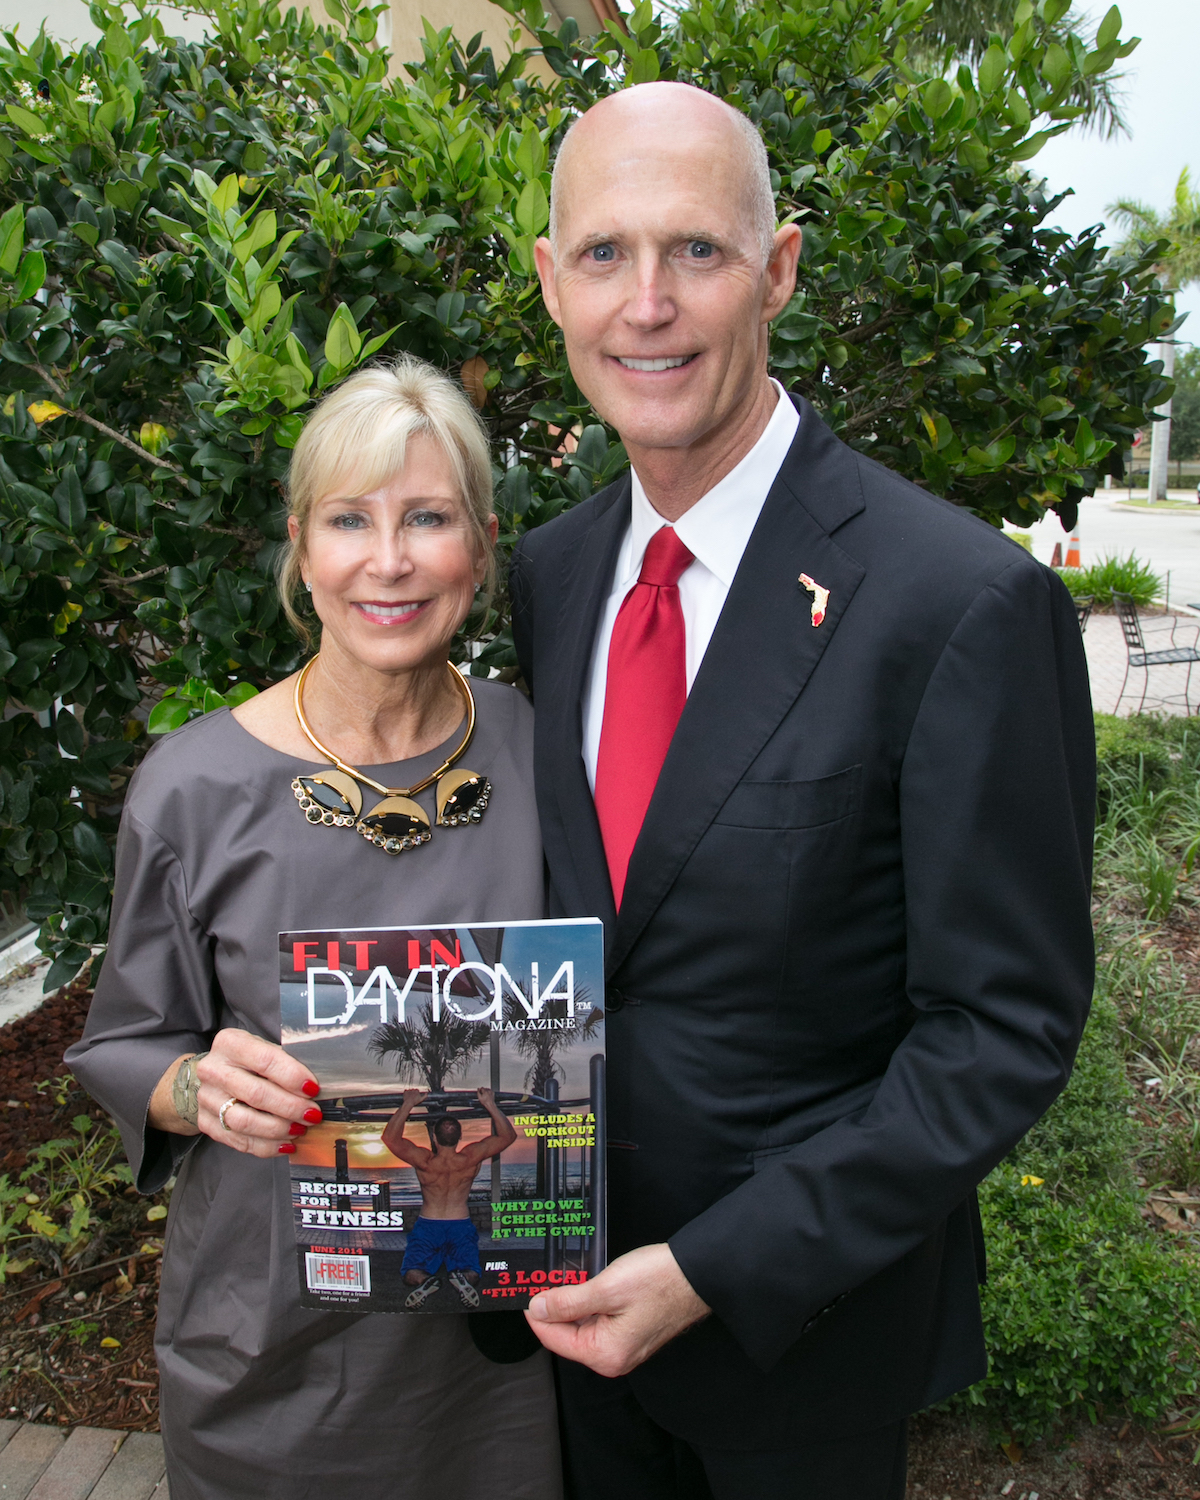 Governor Rick Scott and wife, Ann Scott with Fit in Daytona Magazine